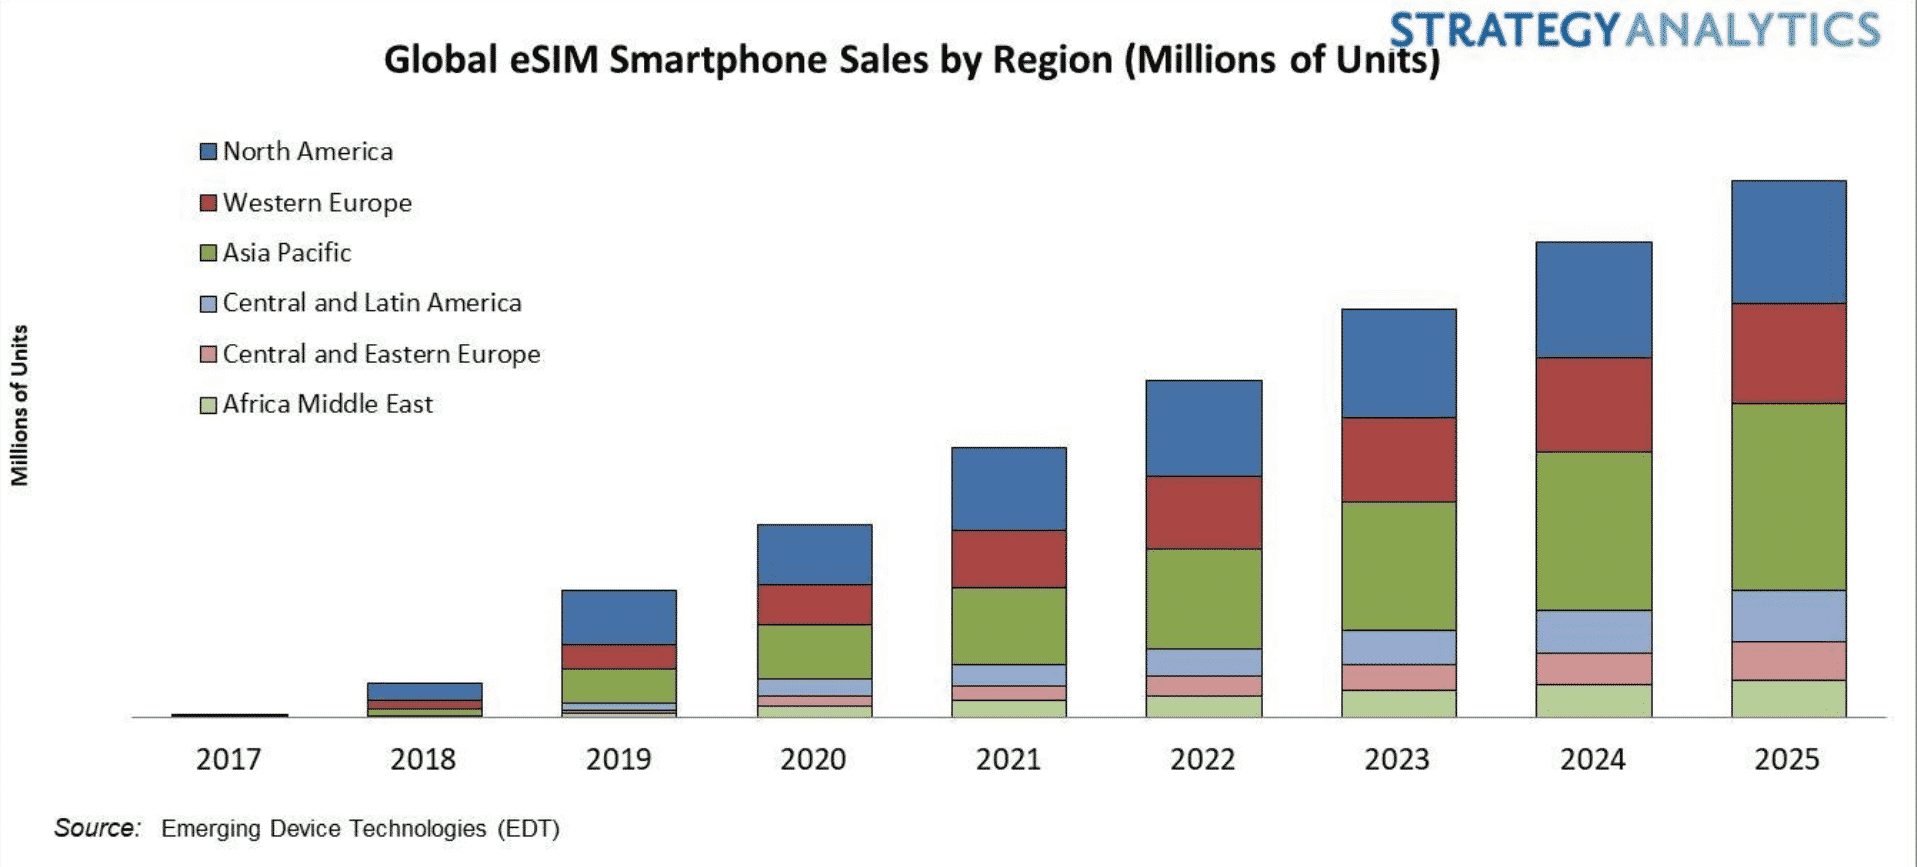 Research by Strategy Analytics indicates global eSIM smartphone sales will continue.